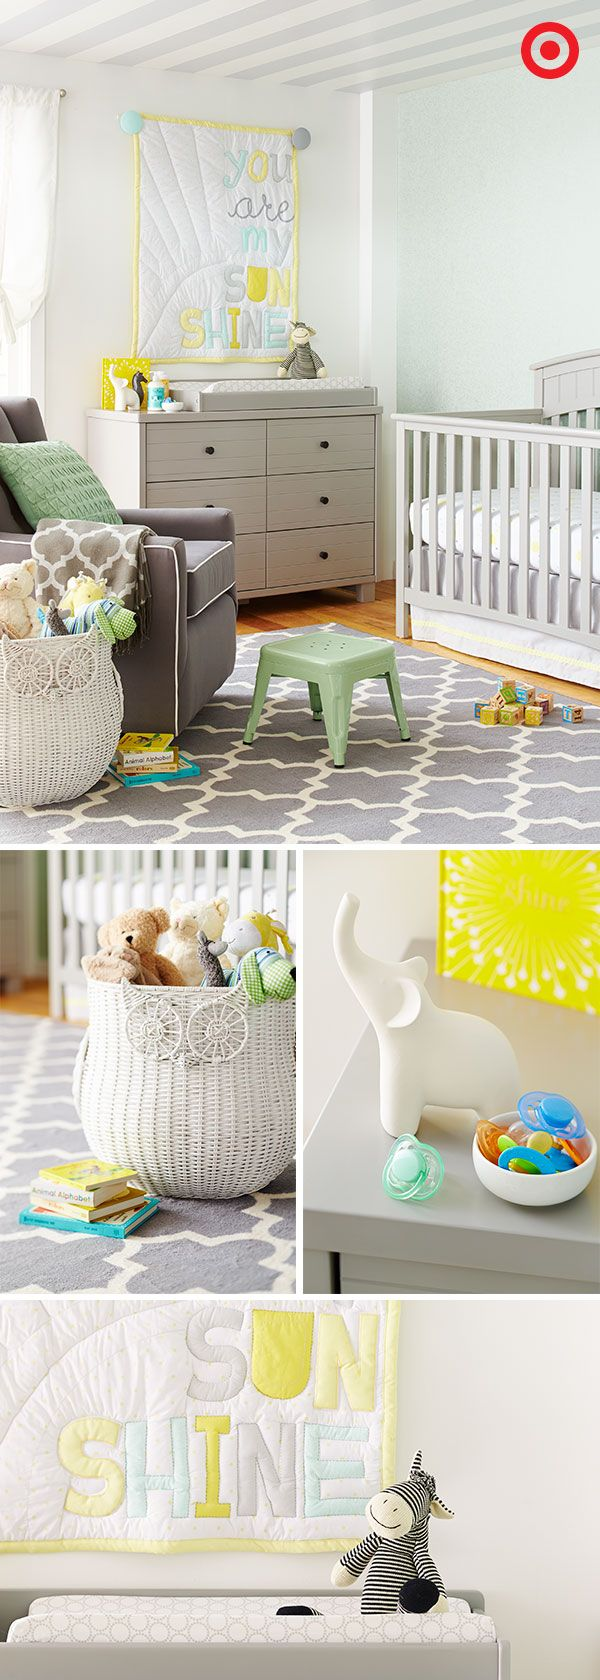 Keeping Baby S Gender A Surprise Decorate The Nursery In